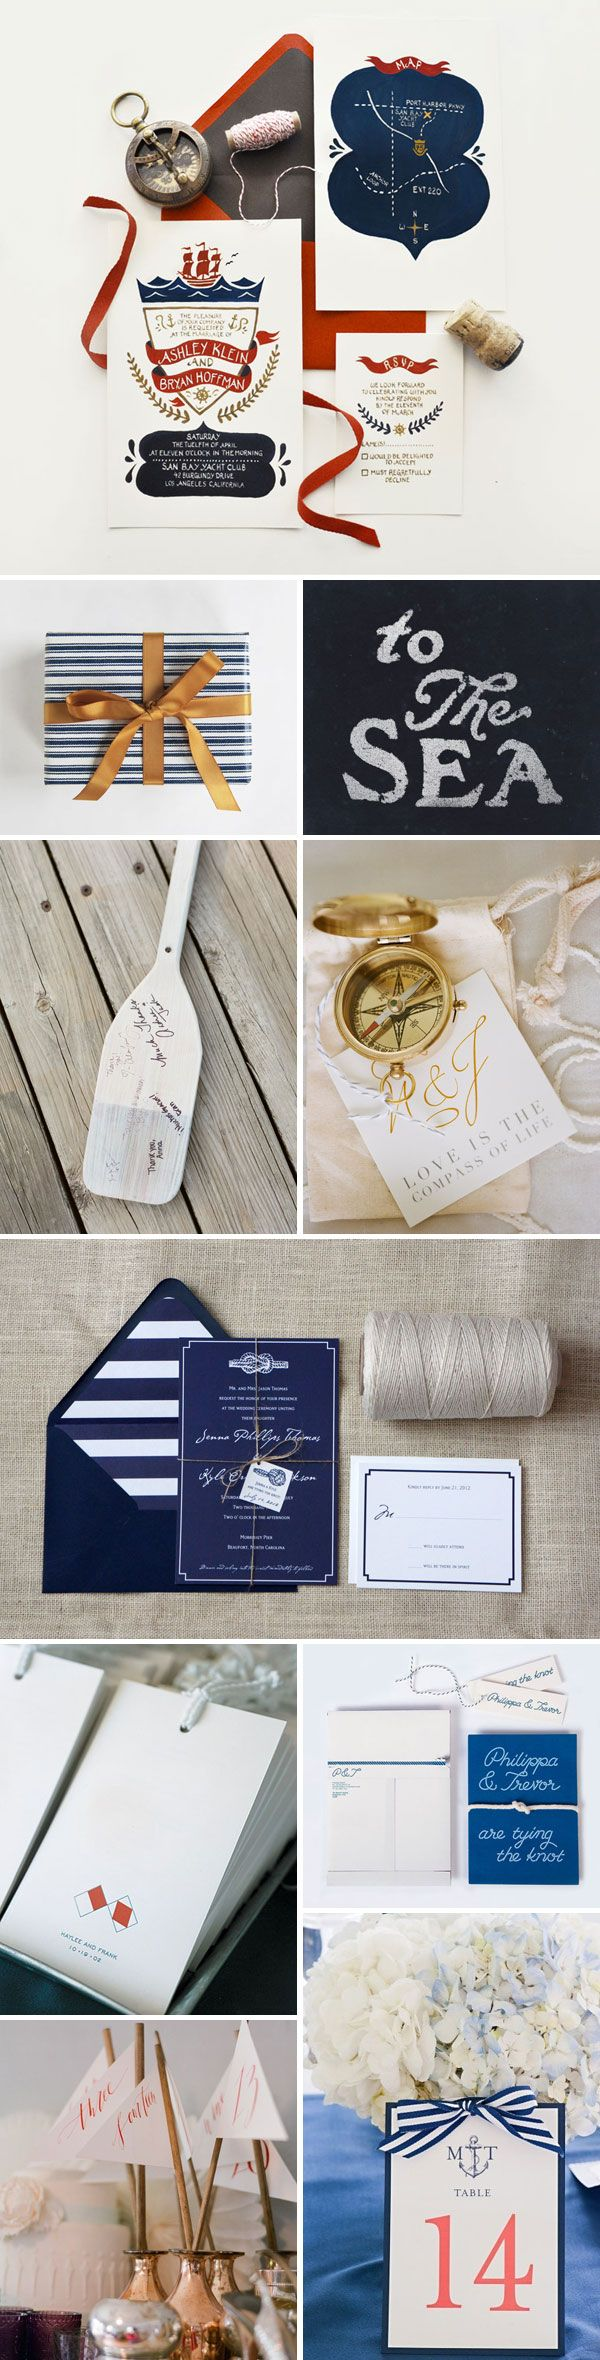 invitation message for wedding in hindi%0A Nautical themed wedding invite